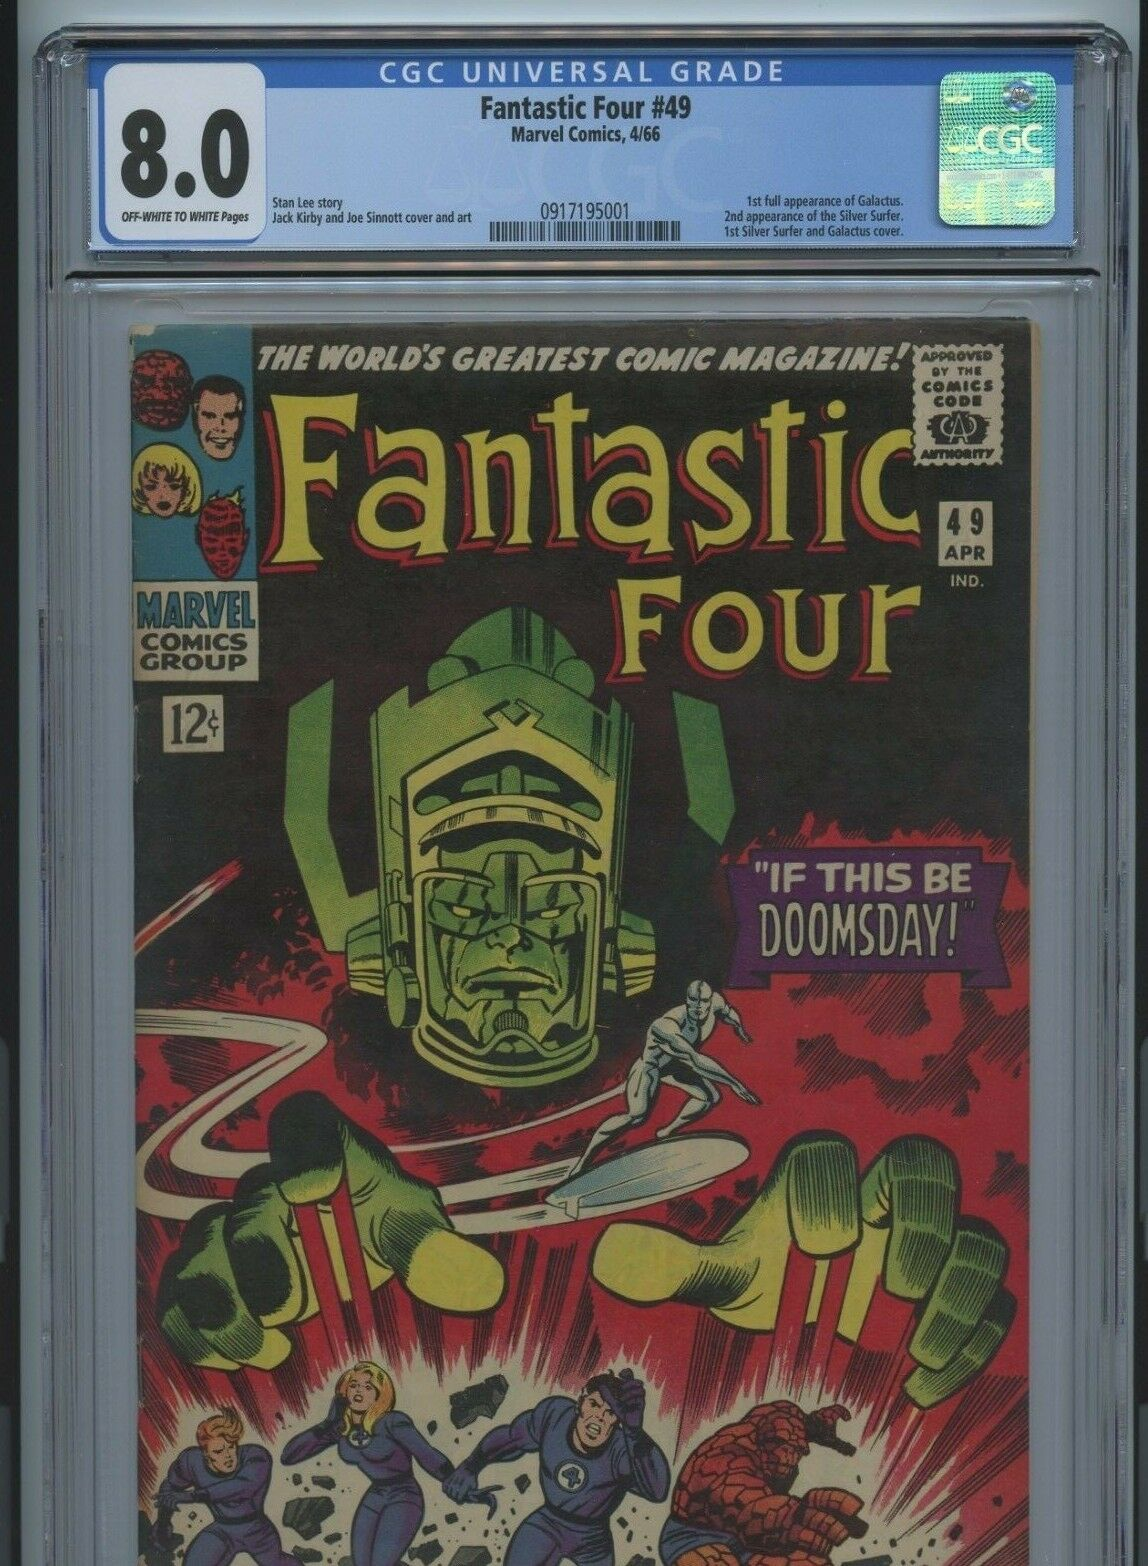 FANTASTIC FOUR #49 CGC 8.0 1st FULL APP GALACTUS, First Silver Surfer Cover